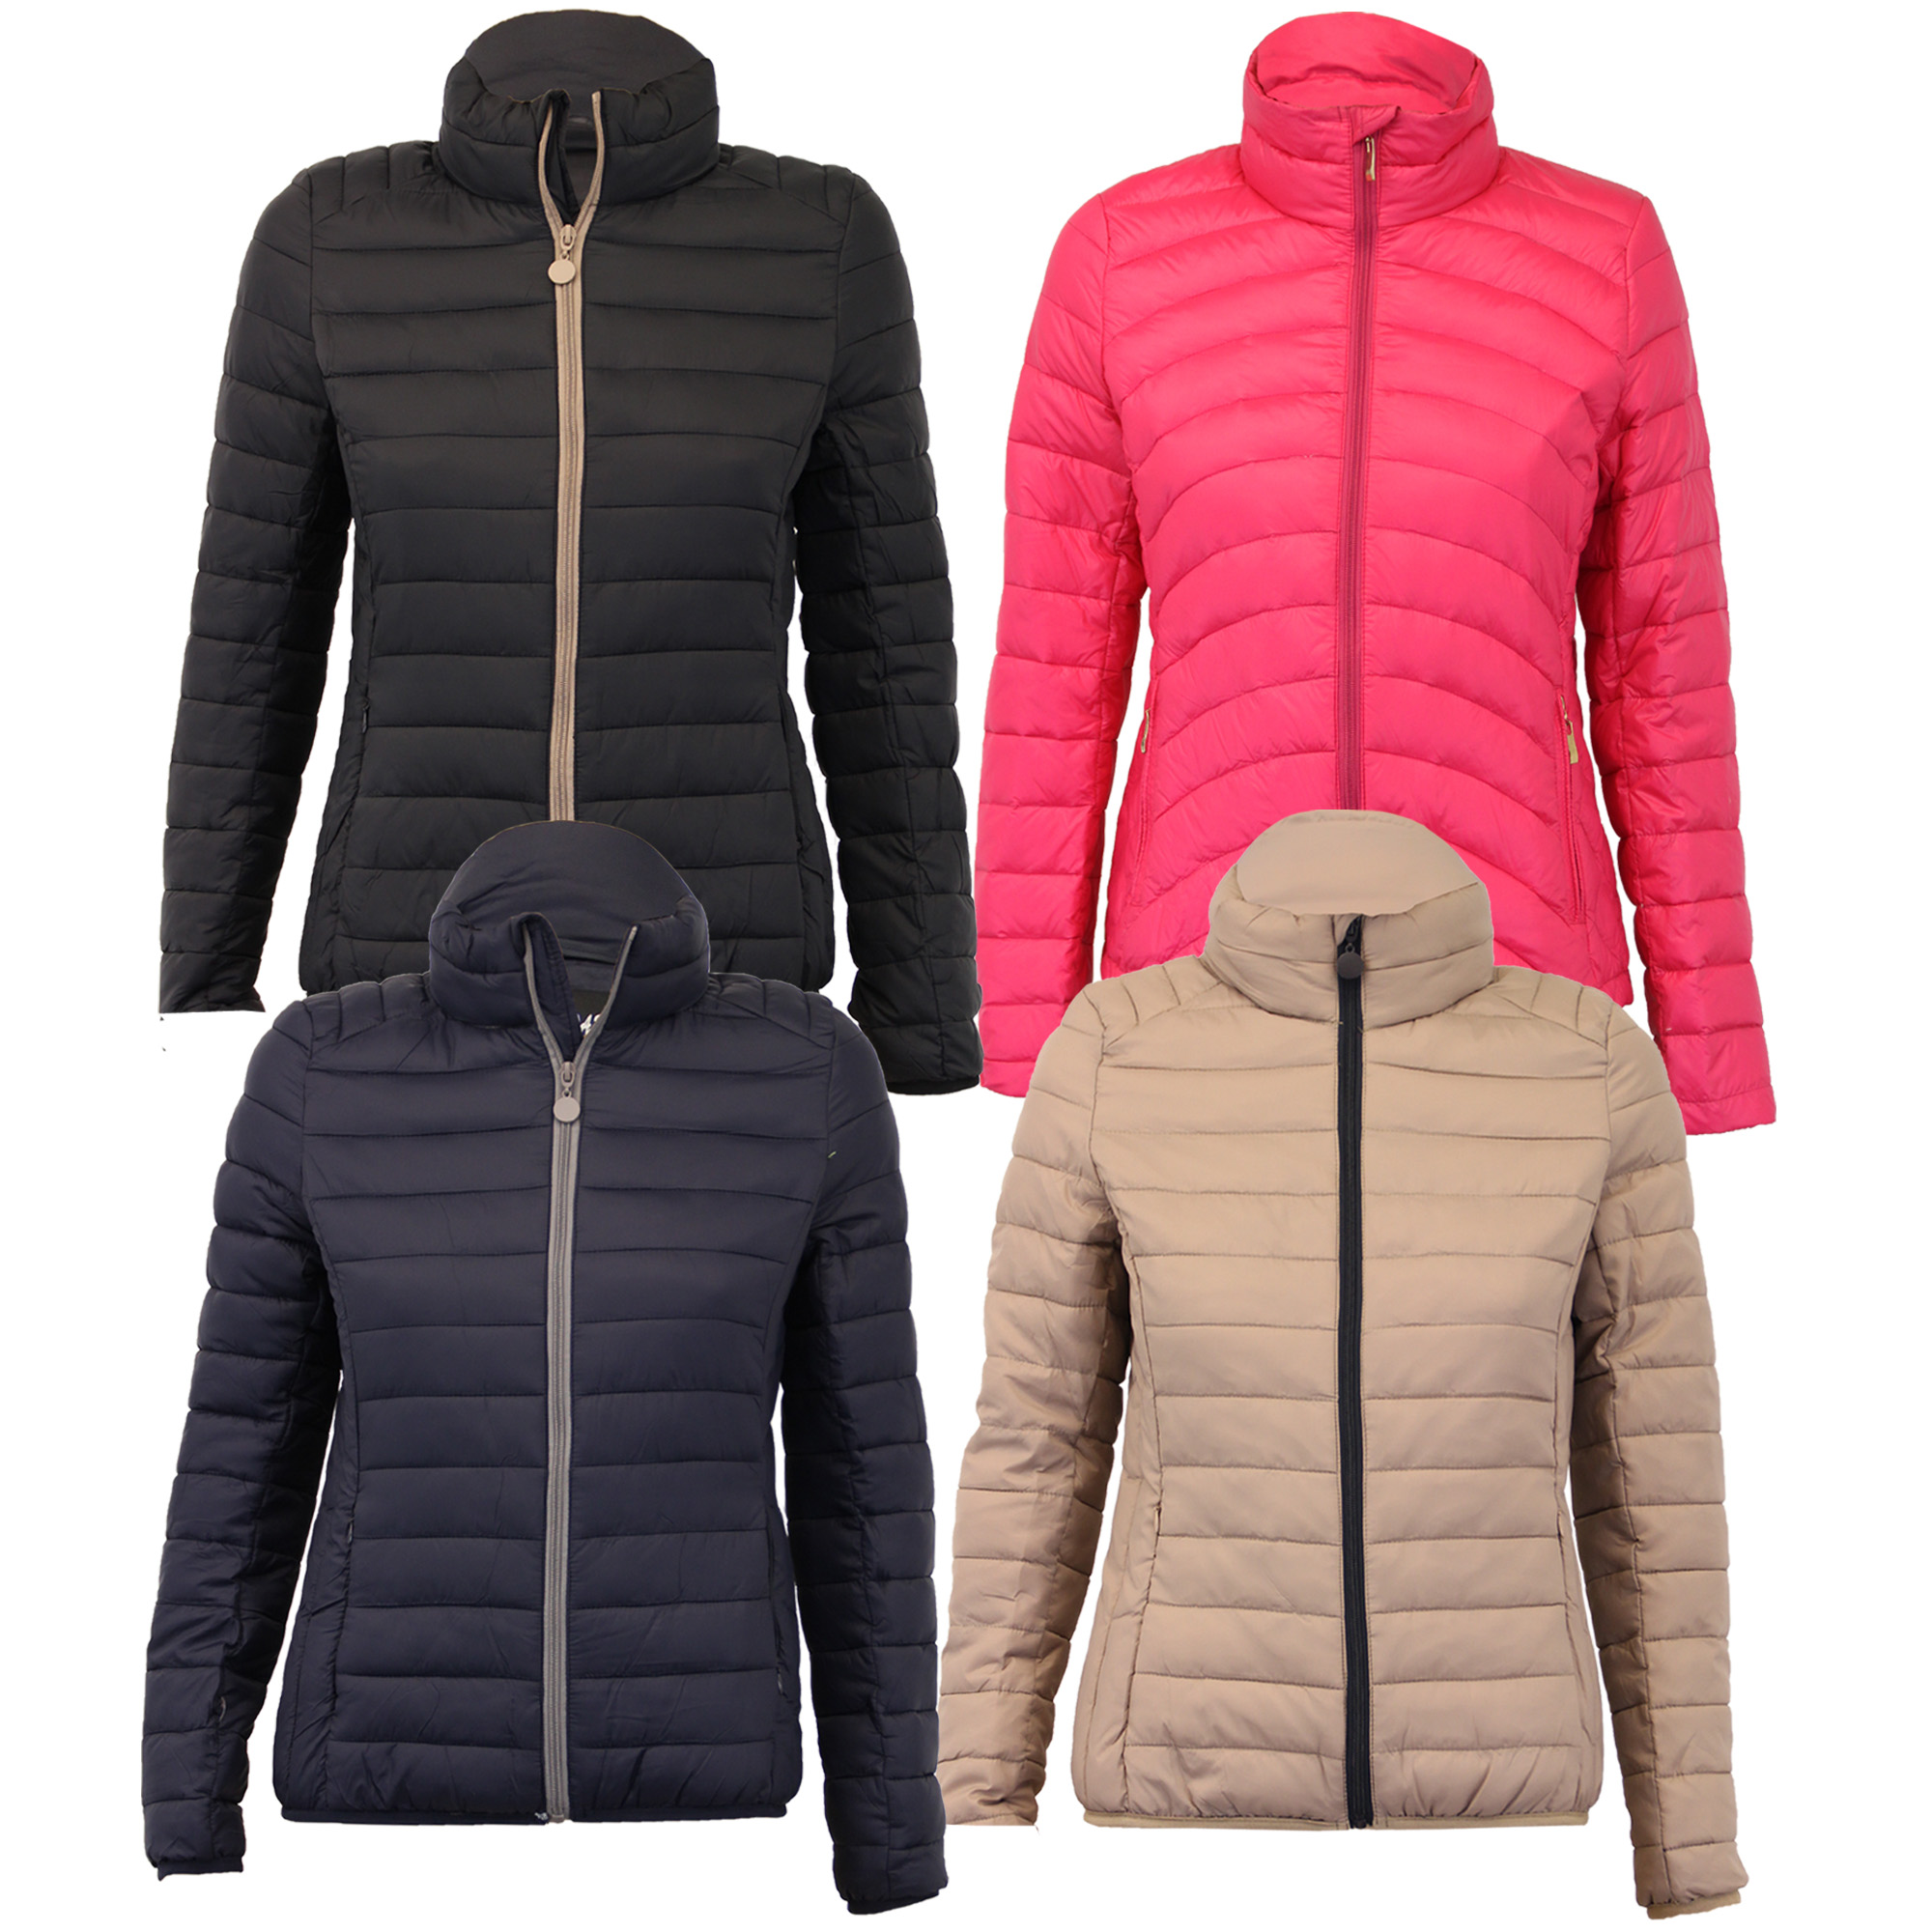 Ladies Black Down Jacket | Jackets Review : ladies quilted jacket sale - Adamdwight.com